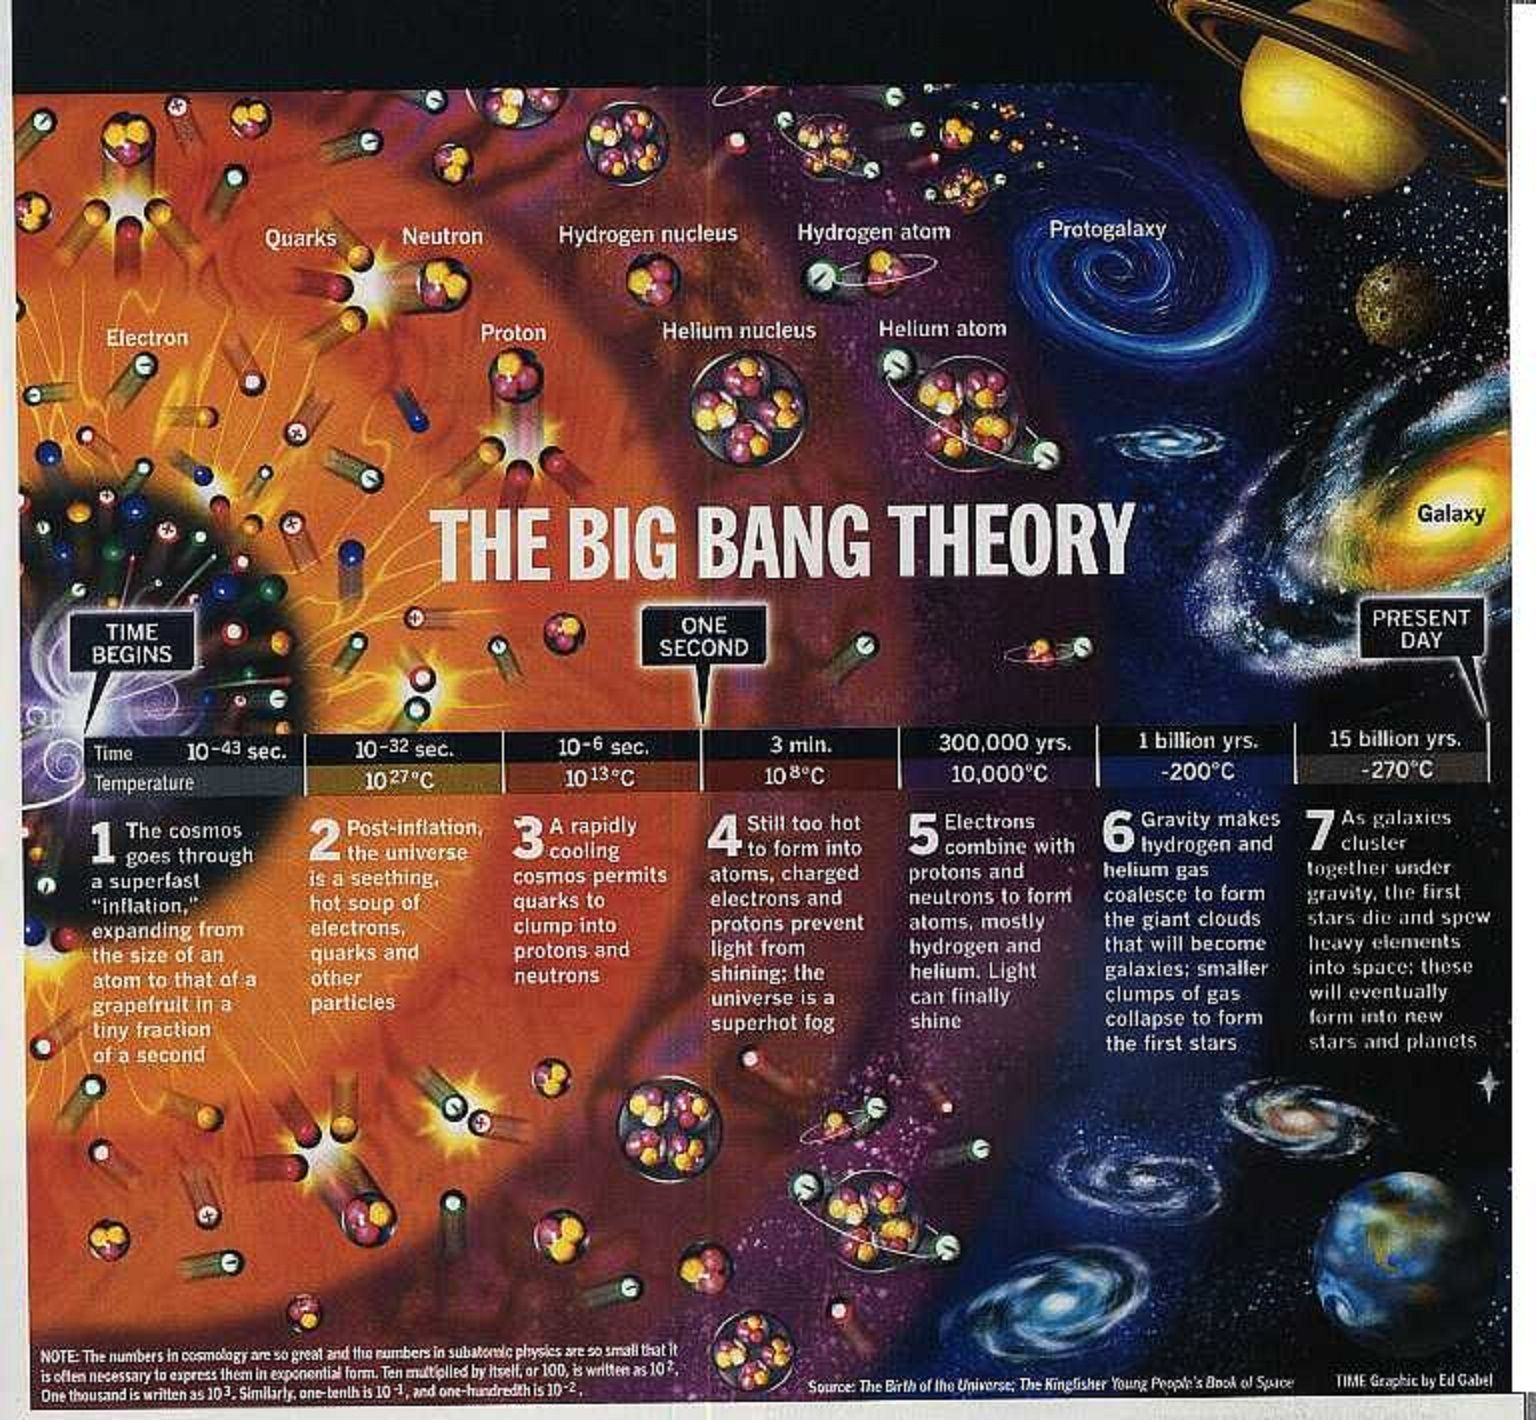 The Big Bagn Theory The Big Bang Theory Illustrated Physics Space Lesson